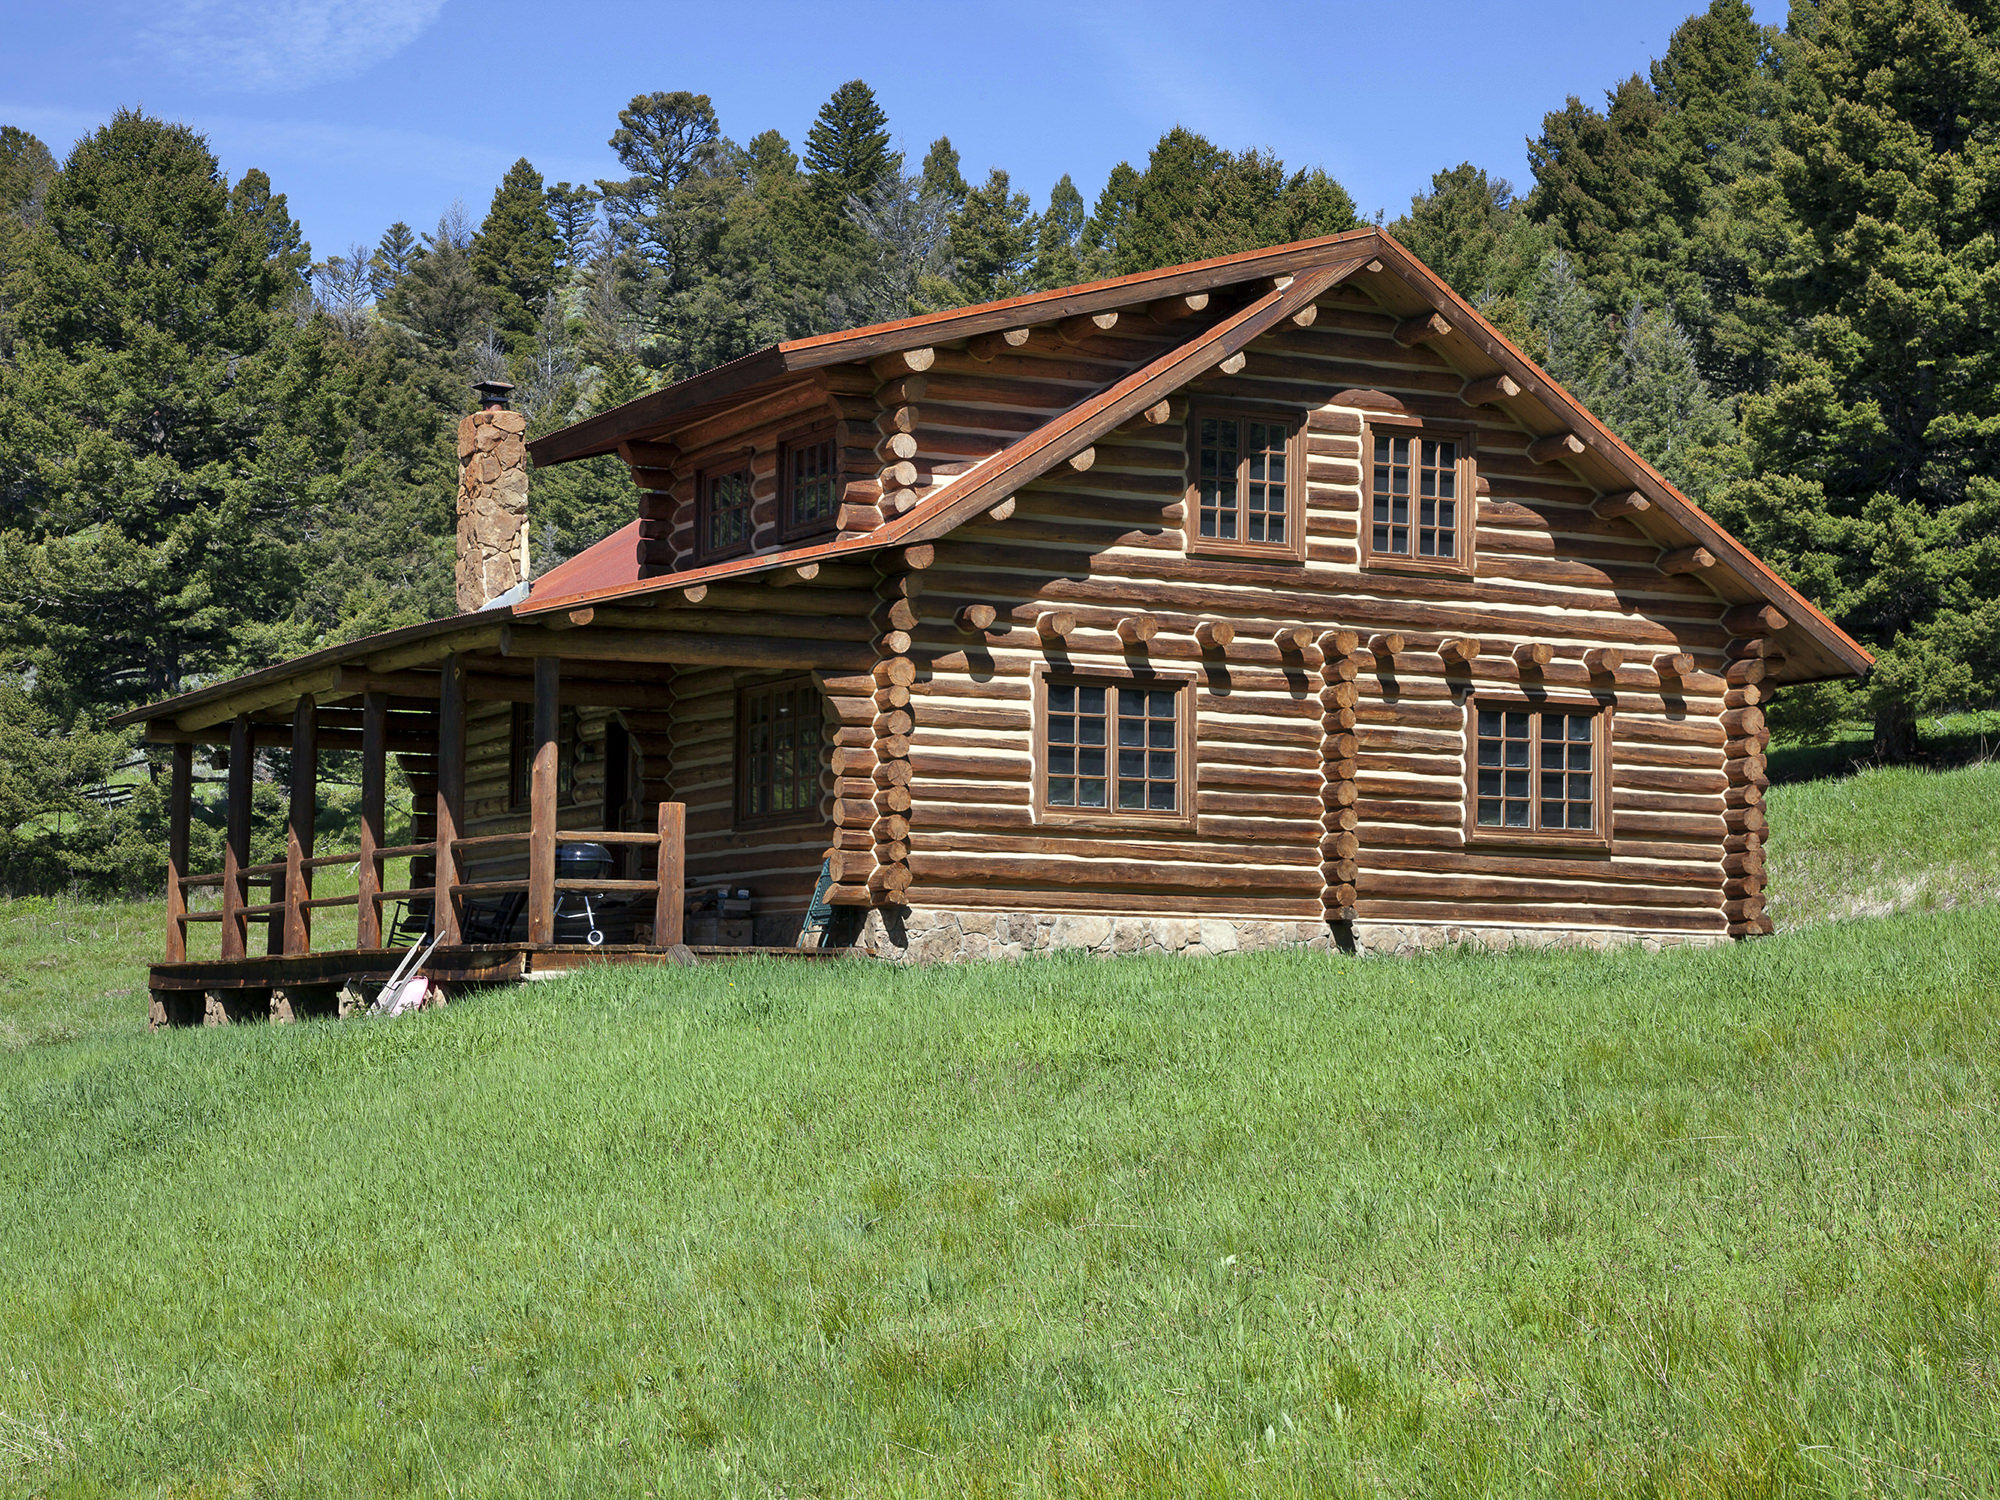 Charmant Property For Sale In Montana Has Rustic Charm